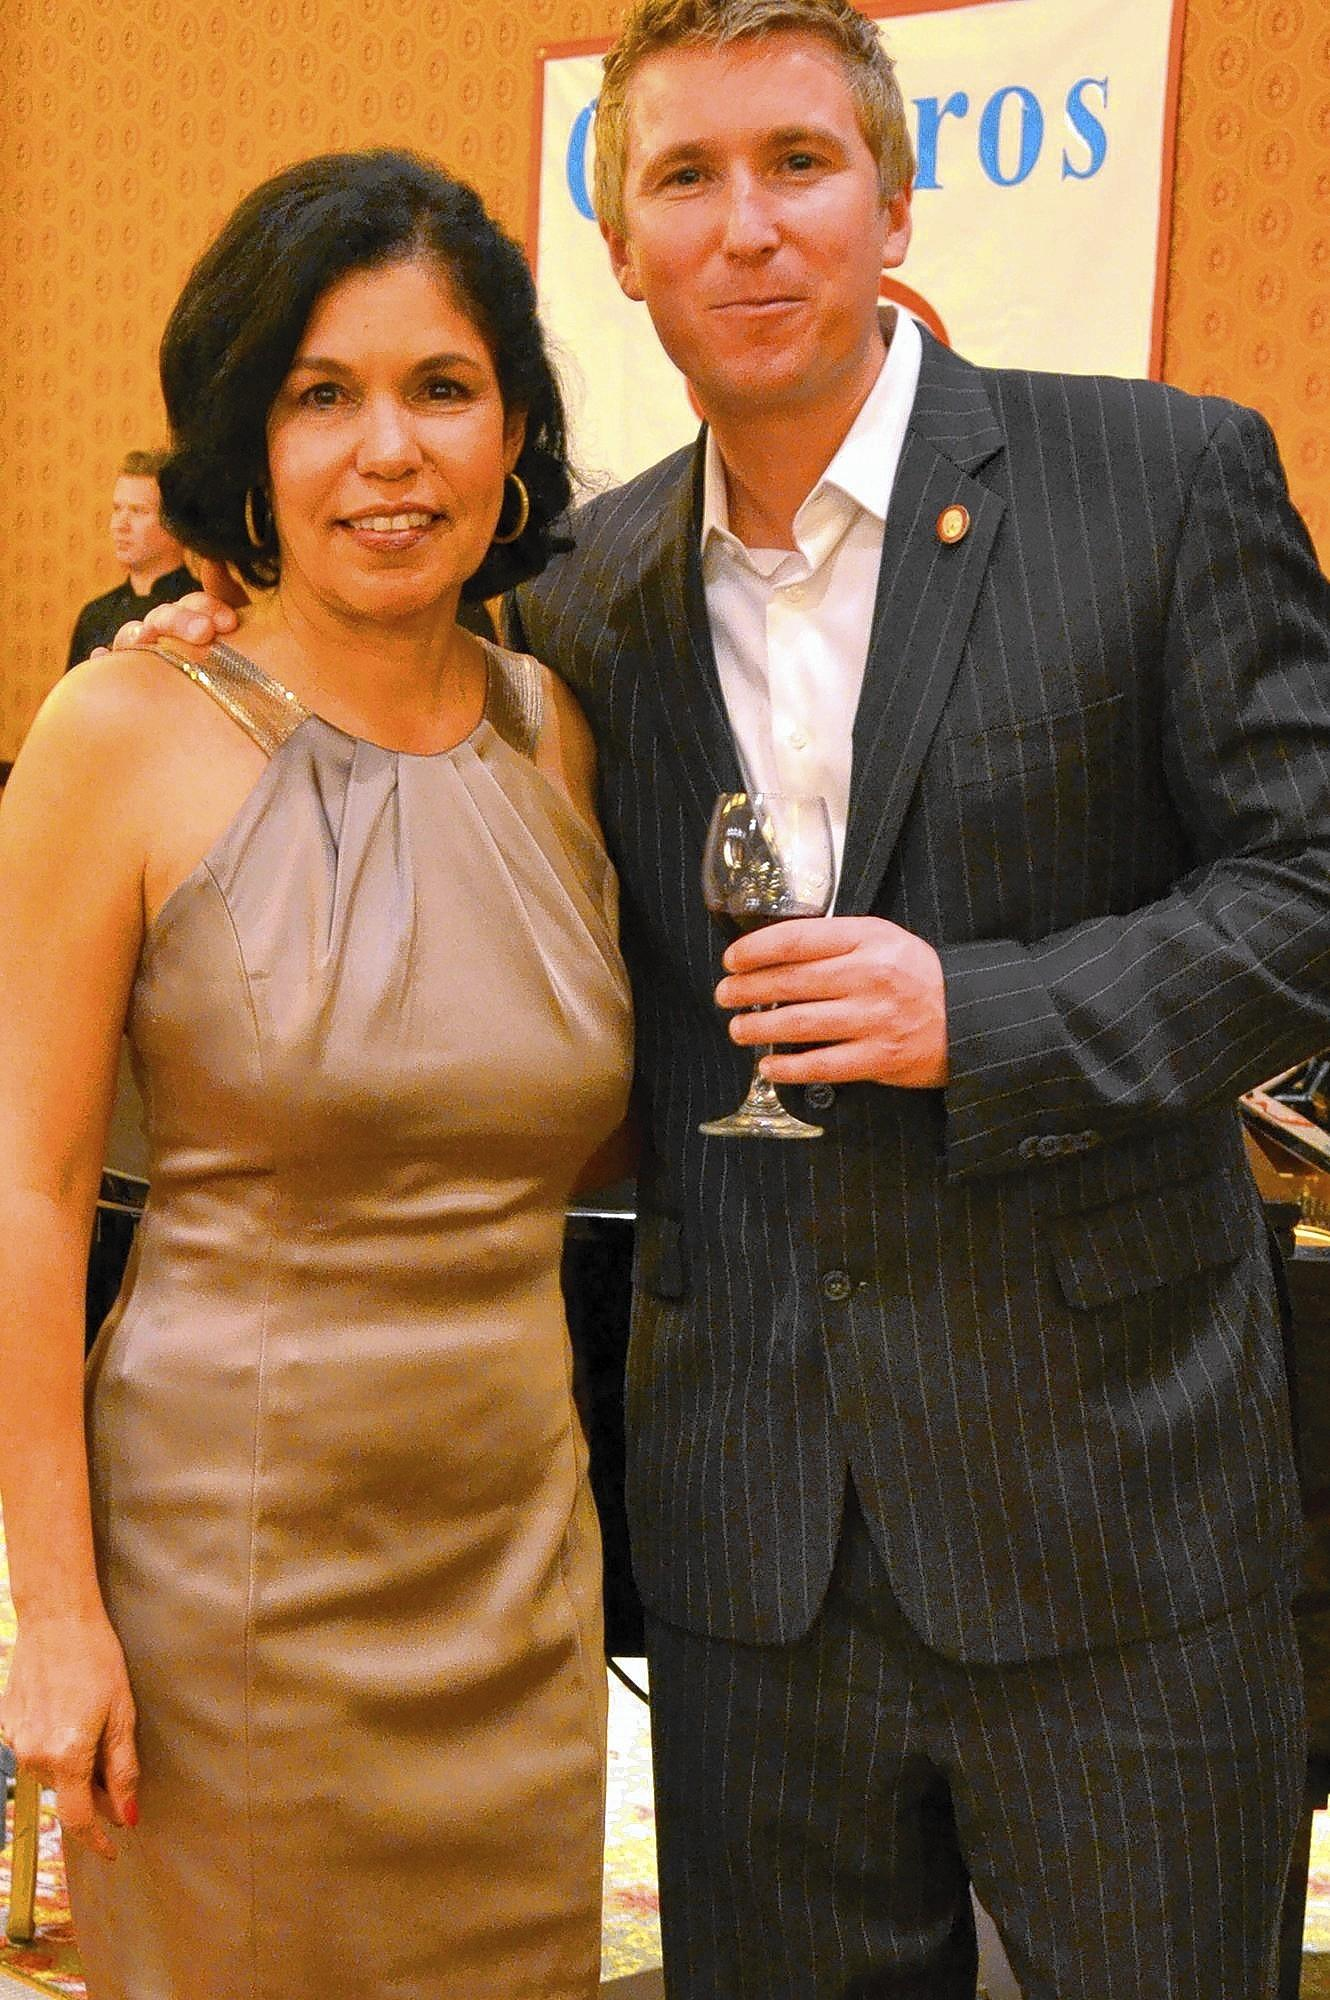 Elsa Greenfield, program director at Community Service Programs' Huntington Beach Youth Shelter, and Huntington Beach native Ian Cauble, founder of SommSelect.com and one of only 202 Master Sommeliers in the world.